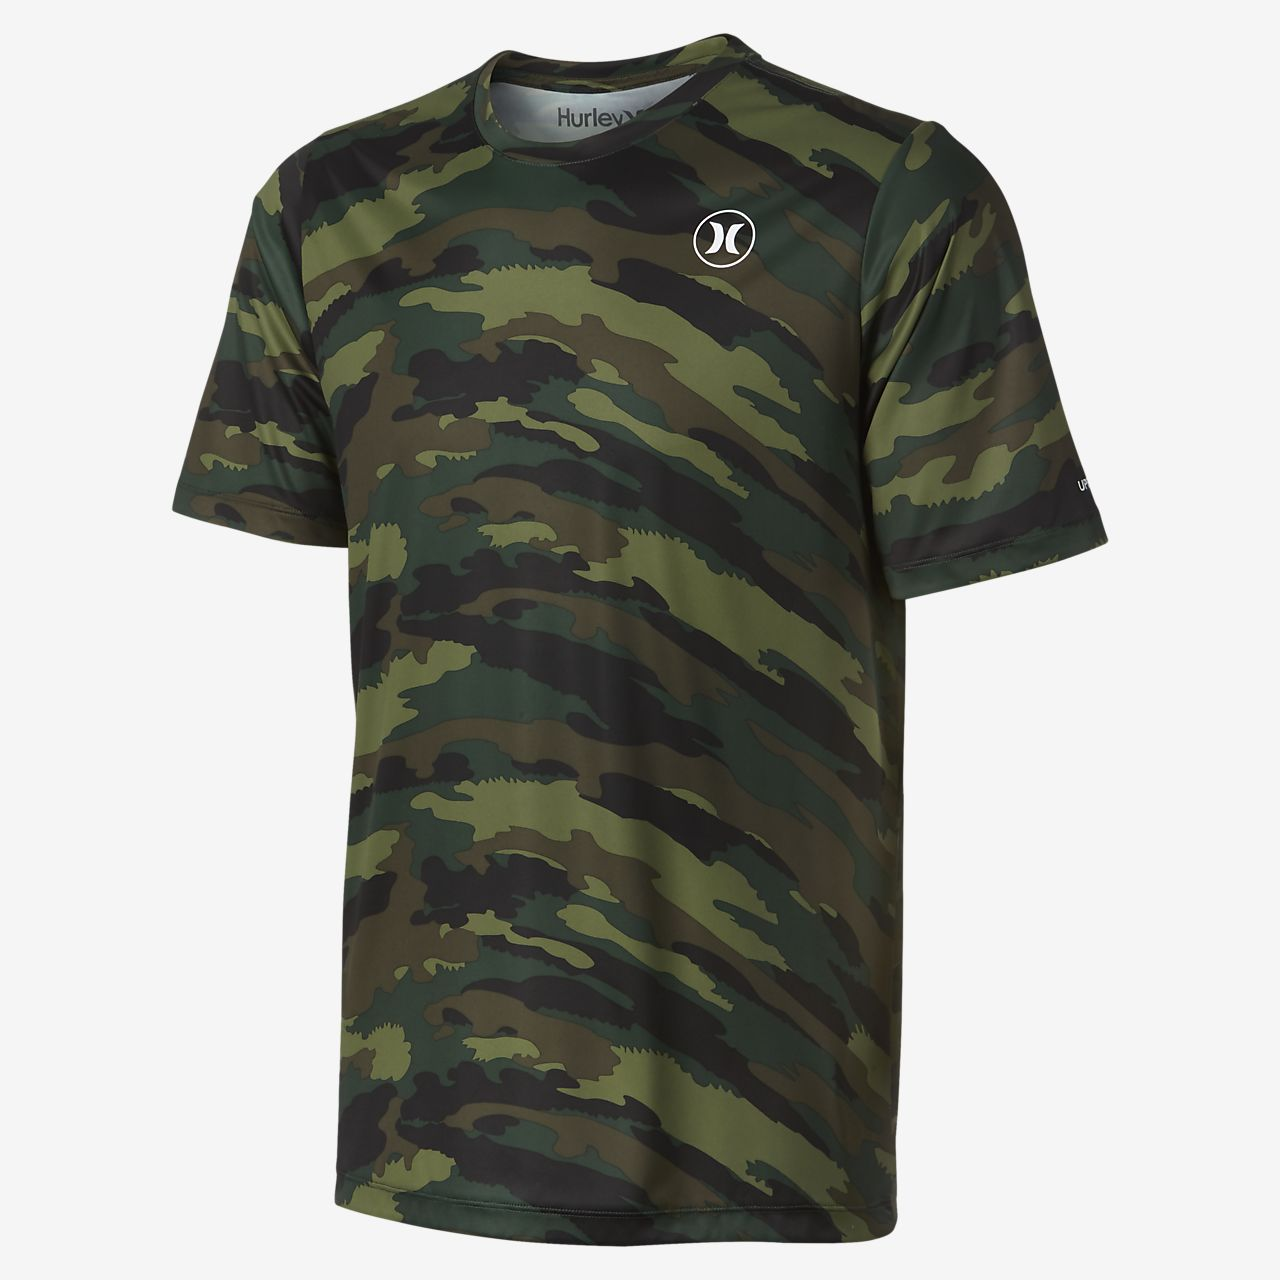 ... Hurley Dri-FIT Icon Camo Men's Surf Shirt